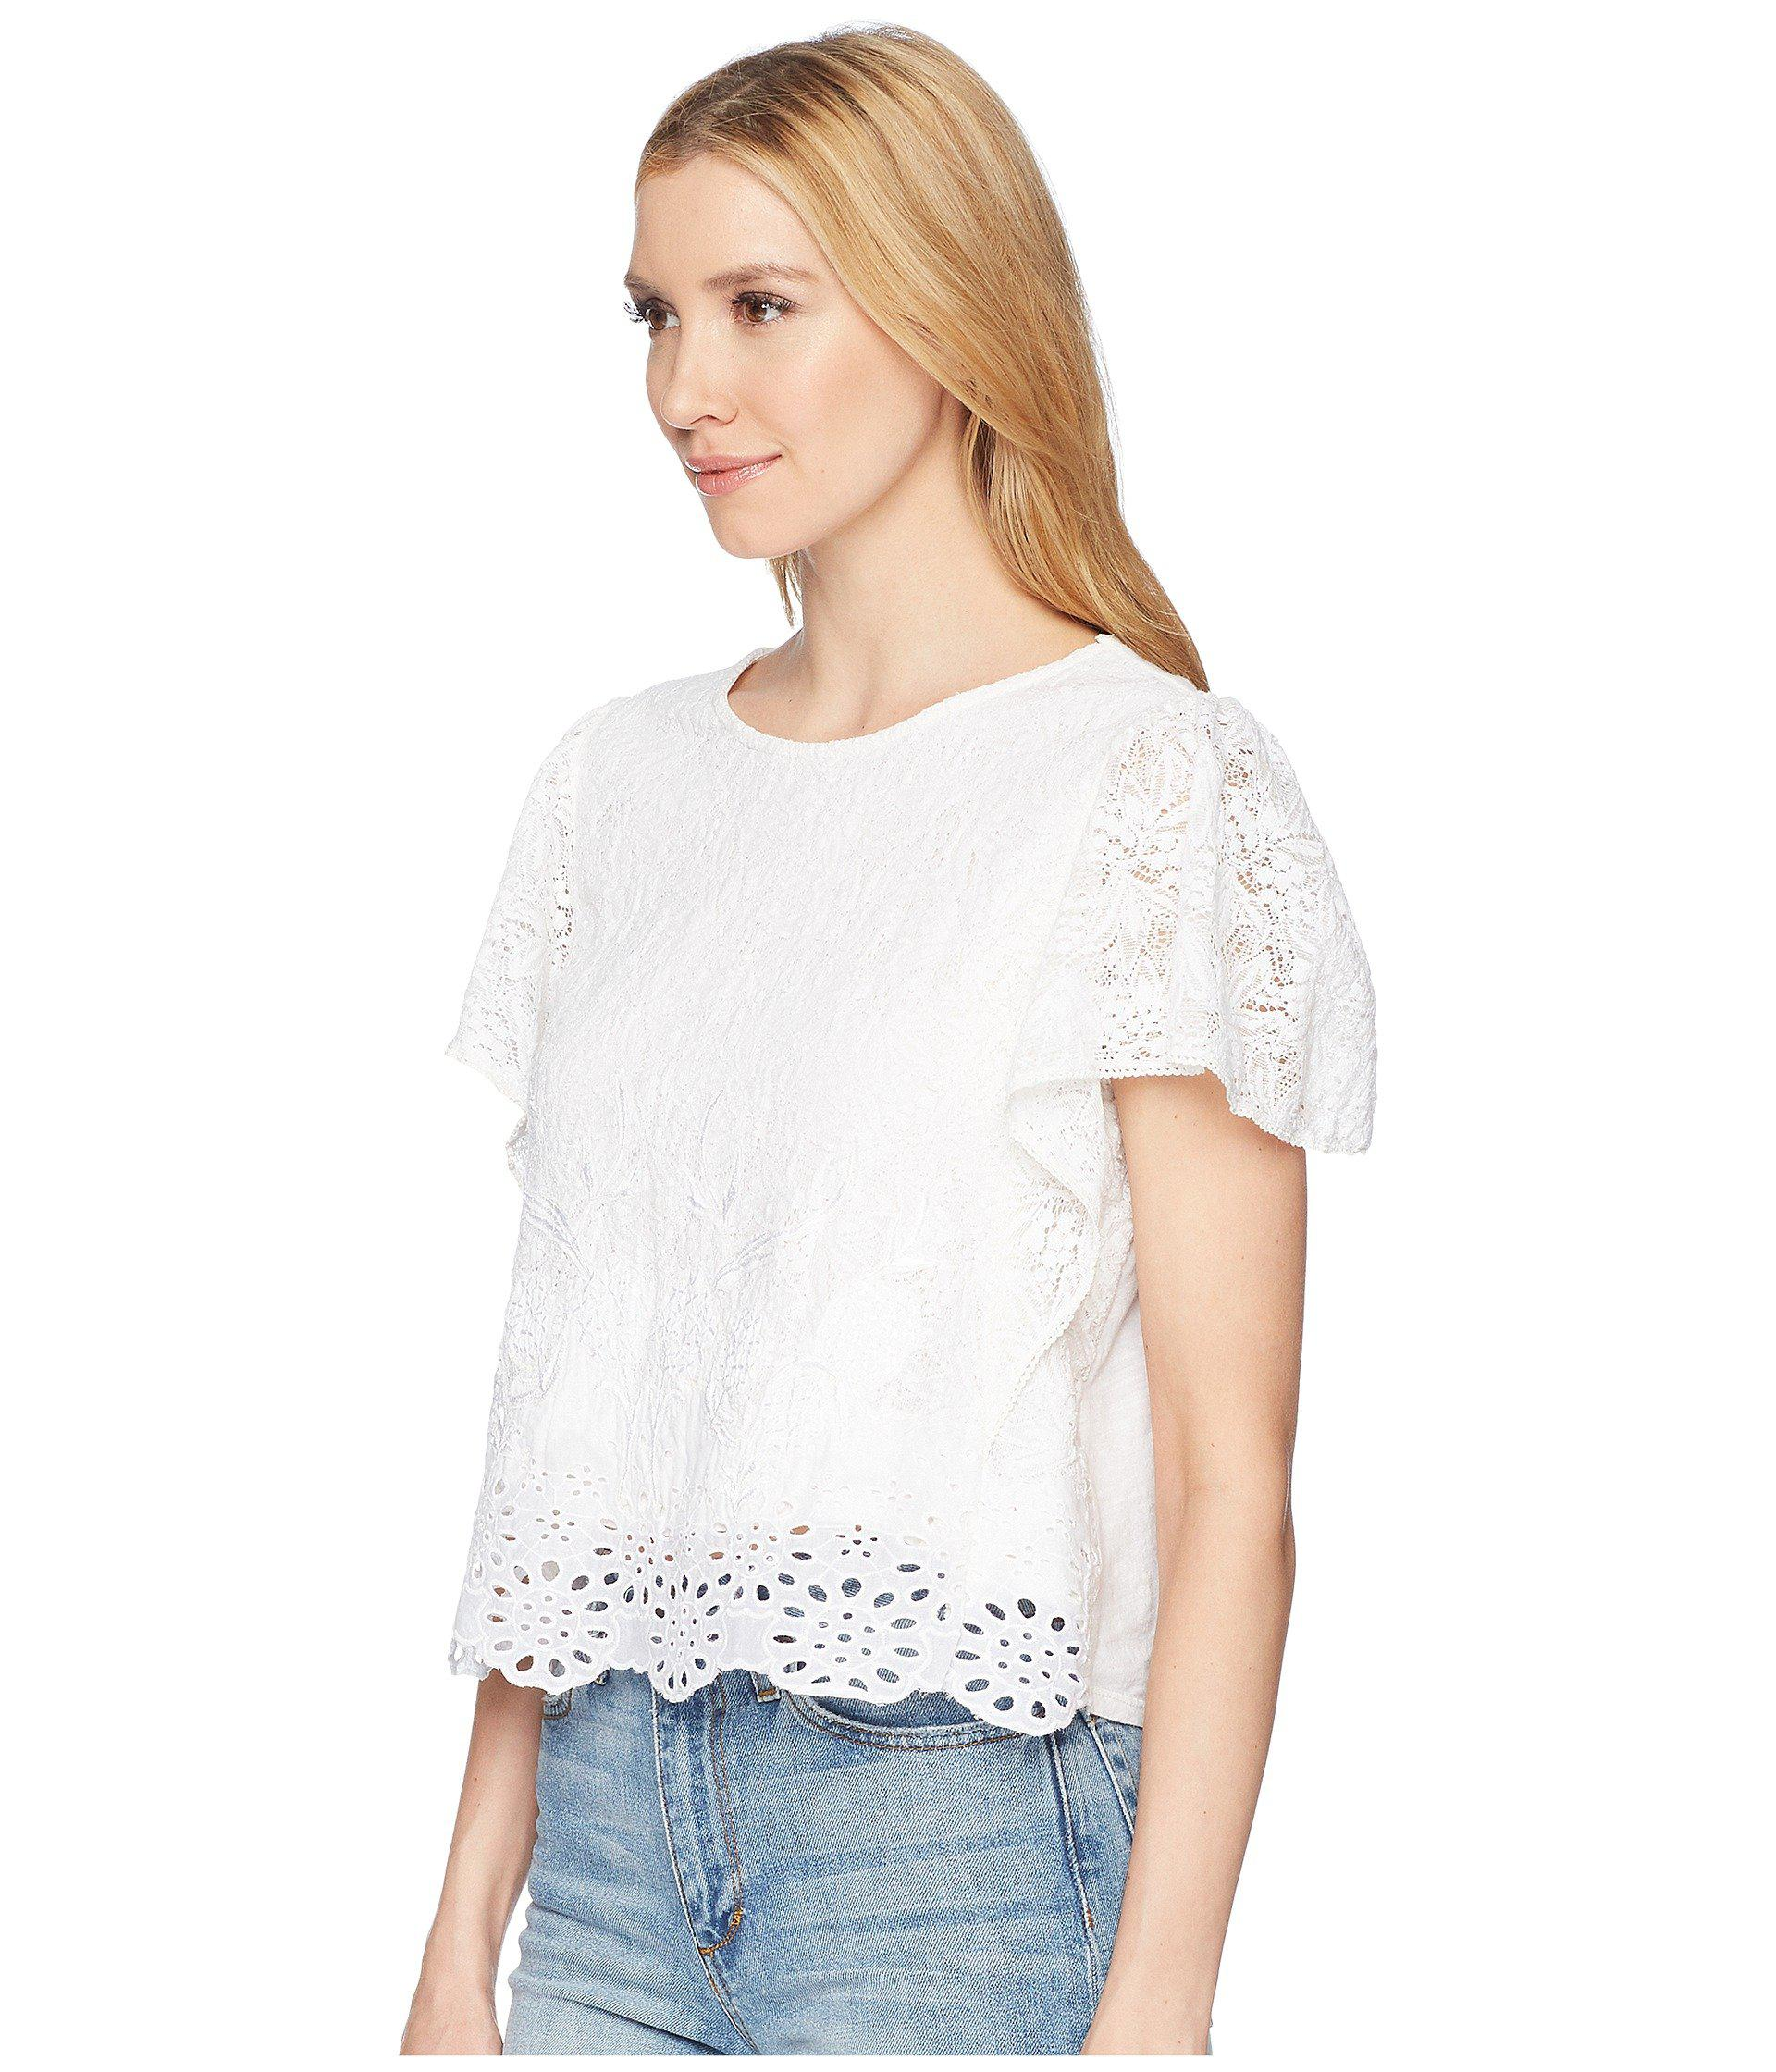 cca5d813c37ff0 Lyst - Lucky Brand Eyelet Top in White - Save 17%